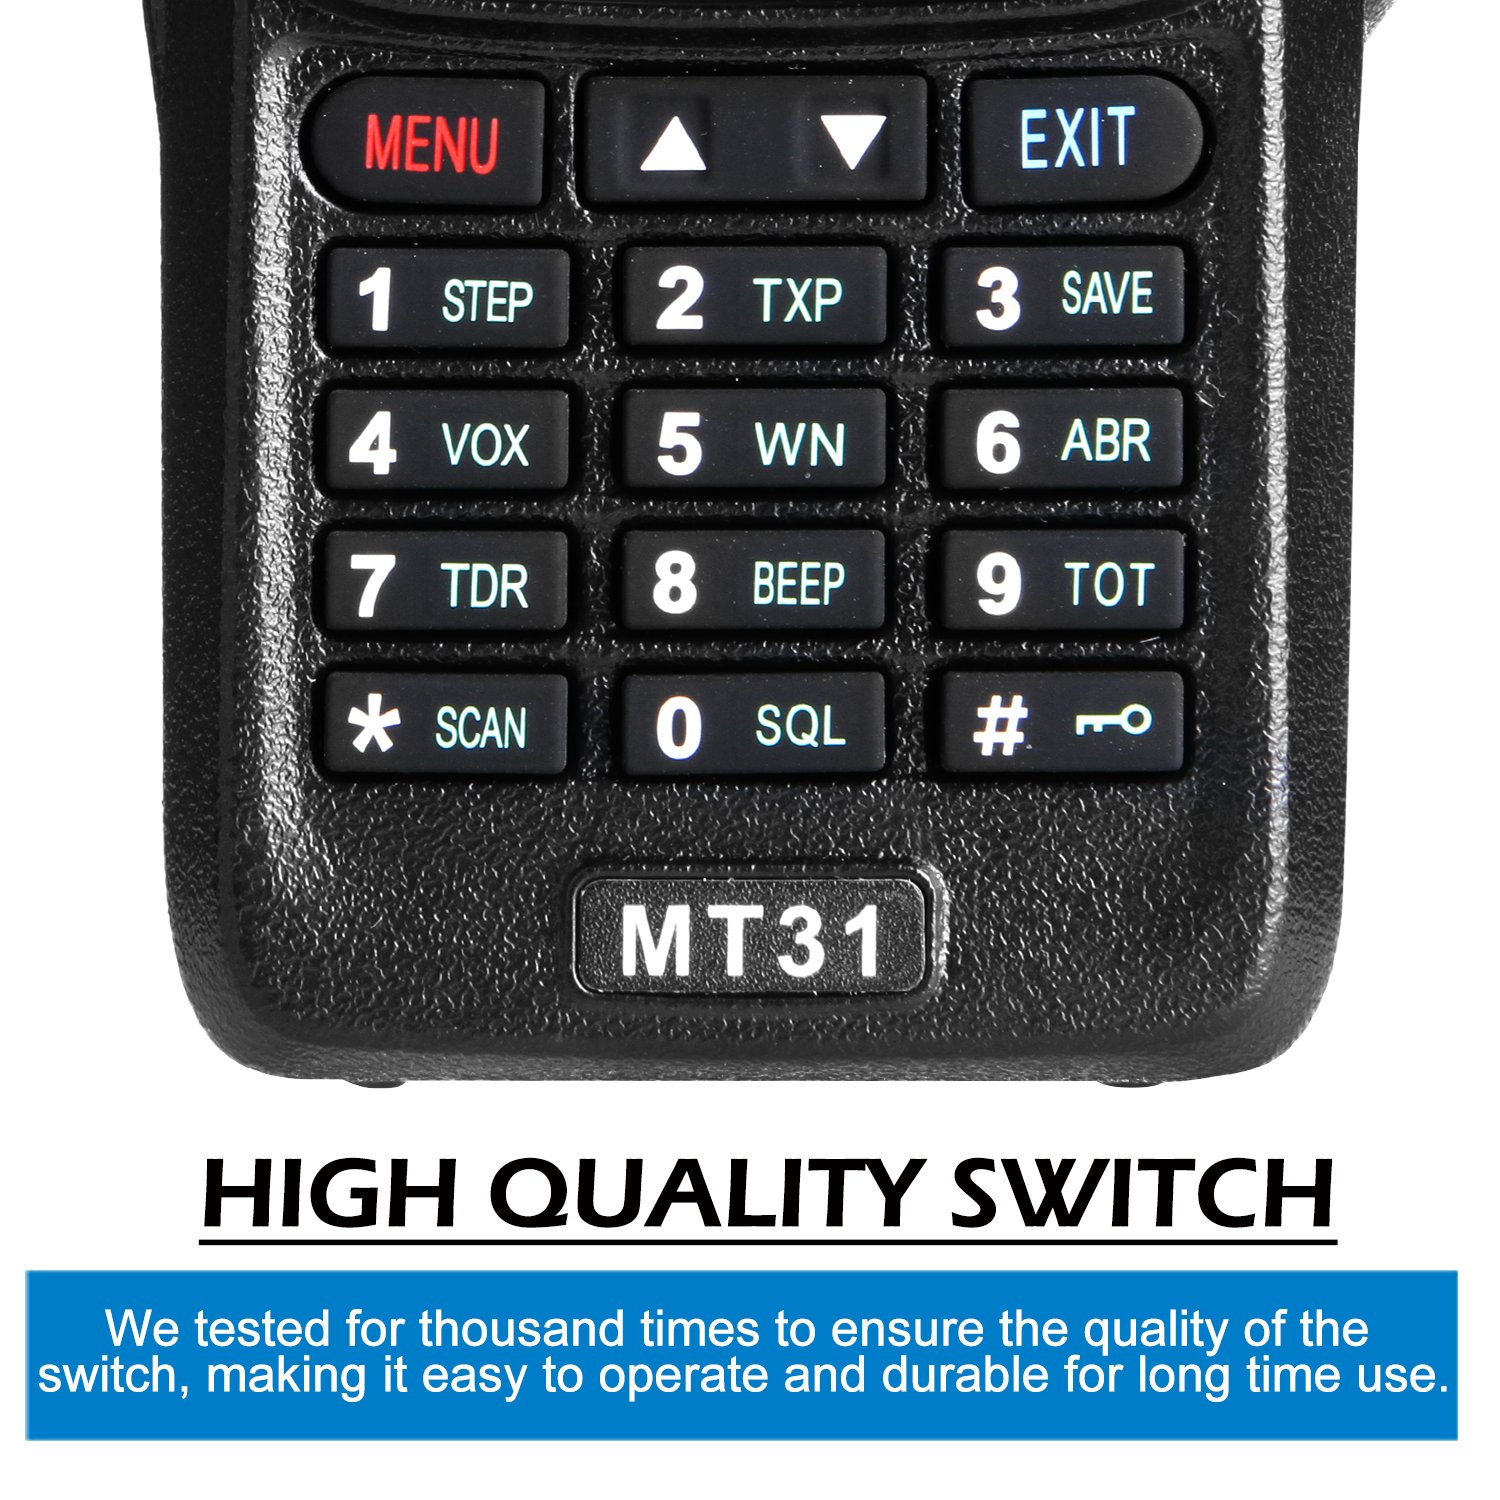 Wireless Radio Transceiver, IP66 Waterproof & Dustproof Two Way Radio Walkie Talkie with Headset/LED Flashlight/Battery/Charger for Indoor & Outdoor Activities by Waltalkie (Image #8)